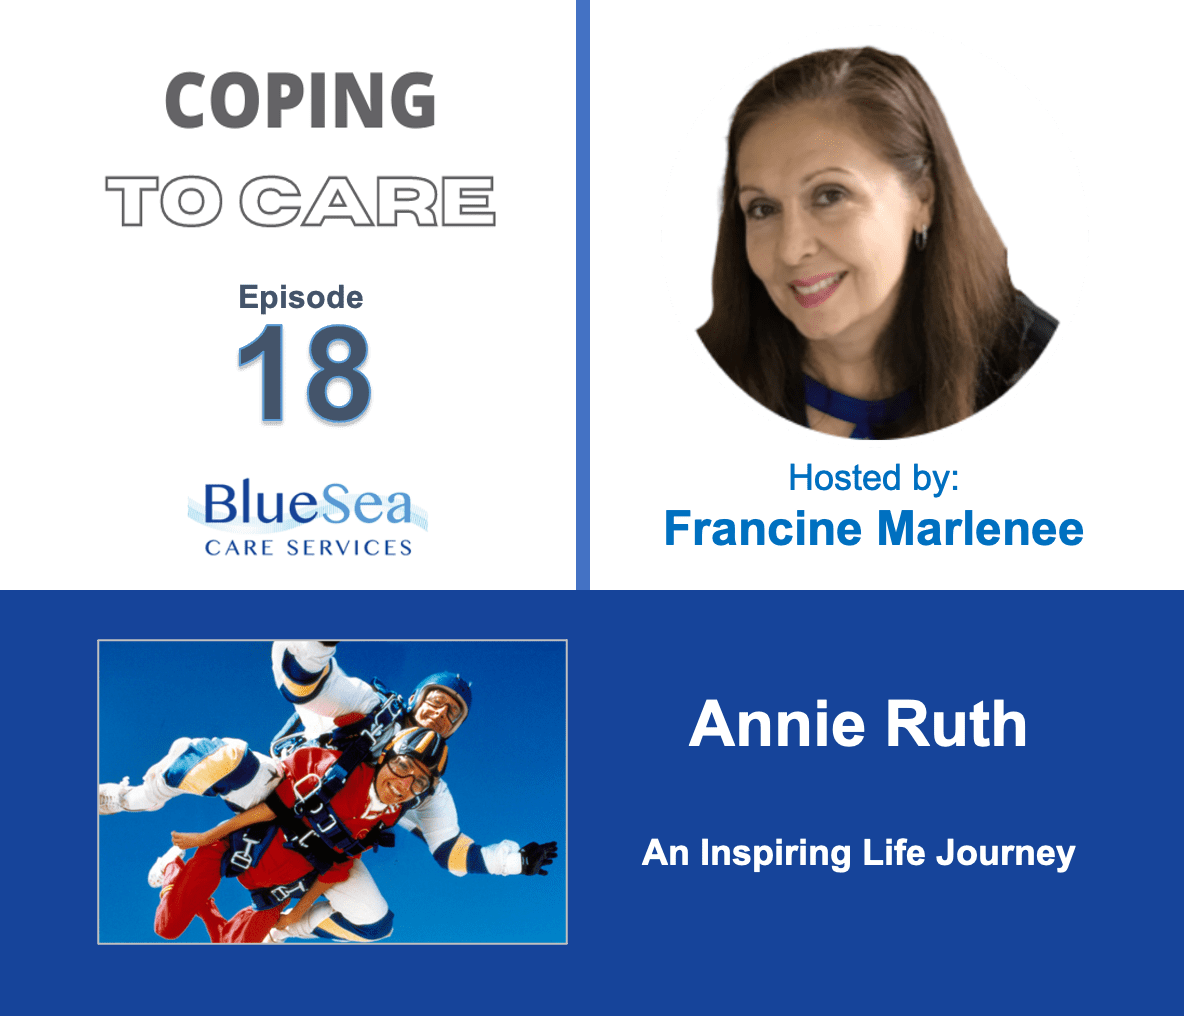 Annie Ruth: An Inspiring Life Journey